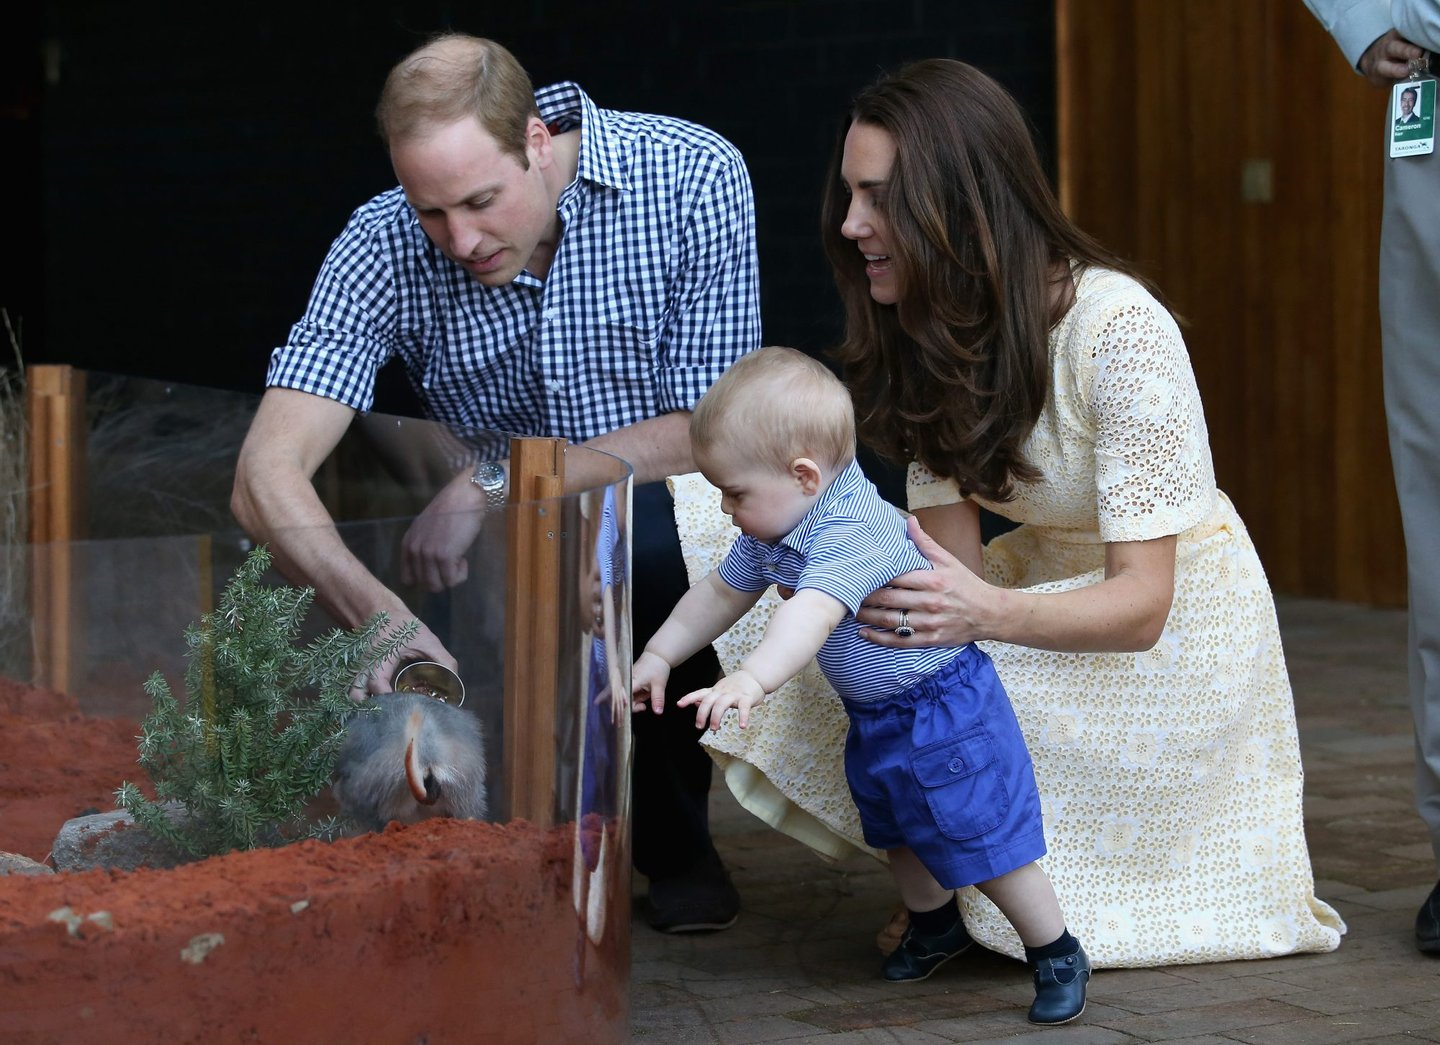 SYDNEY, AUSTRALIA - APRIL 20: Catherine, Duchess of Cambridge holds Prince George of Cambridge as Prince William, Duke of Cambridge looks on whilst meeting a Bilby called George at Taronga Zoo on April 20, 2014 in Sydney, Australia. The Duke and Duchess of Cambridge are on a three-week tour of Australia and New Zealand, the first official trip overseas with their son, Prince George of Cambridge. (Photo by Chris Jackson/Getty Images)